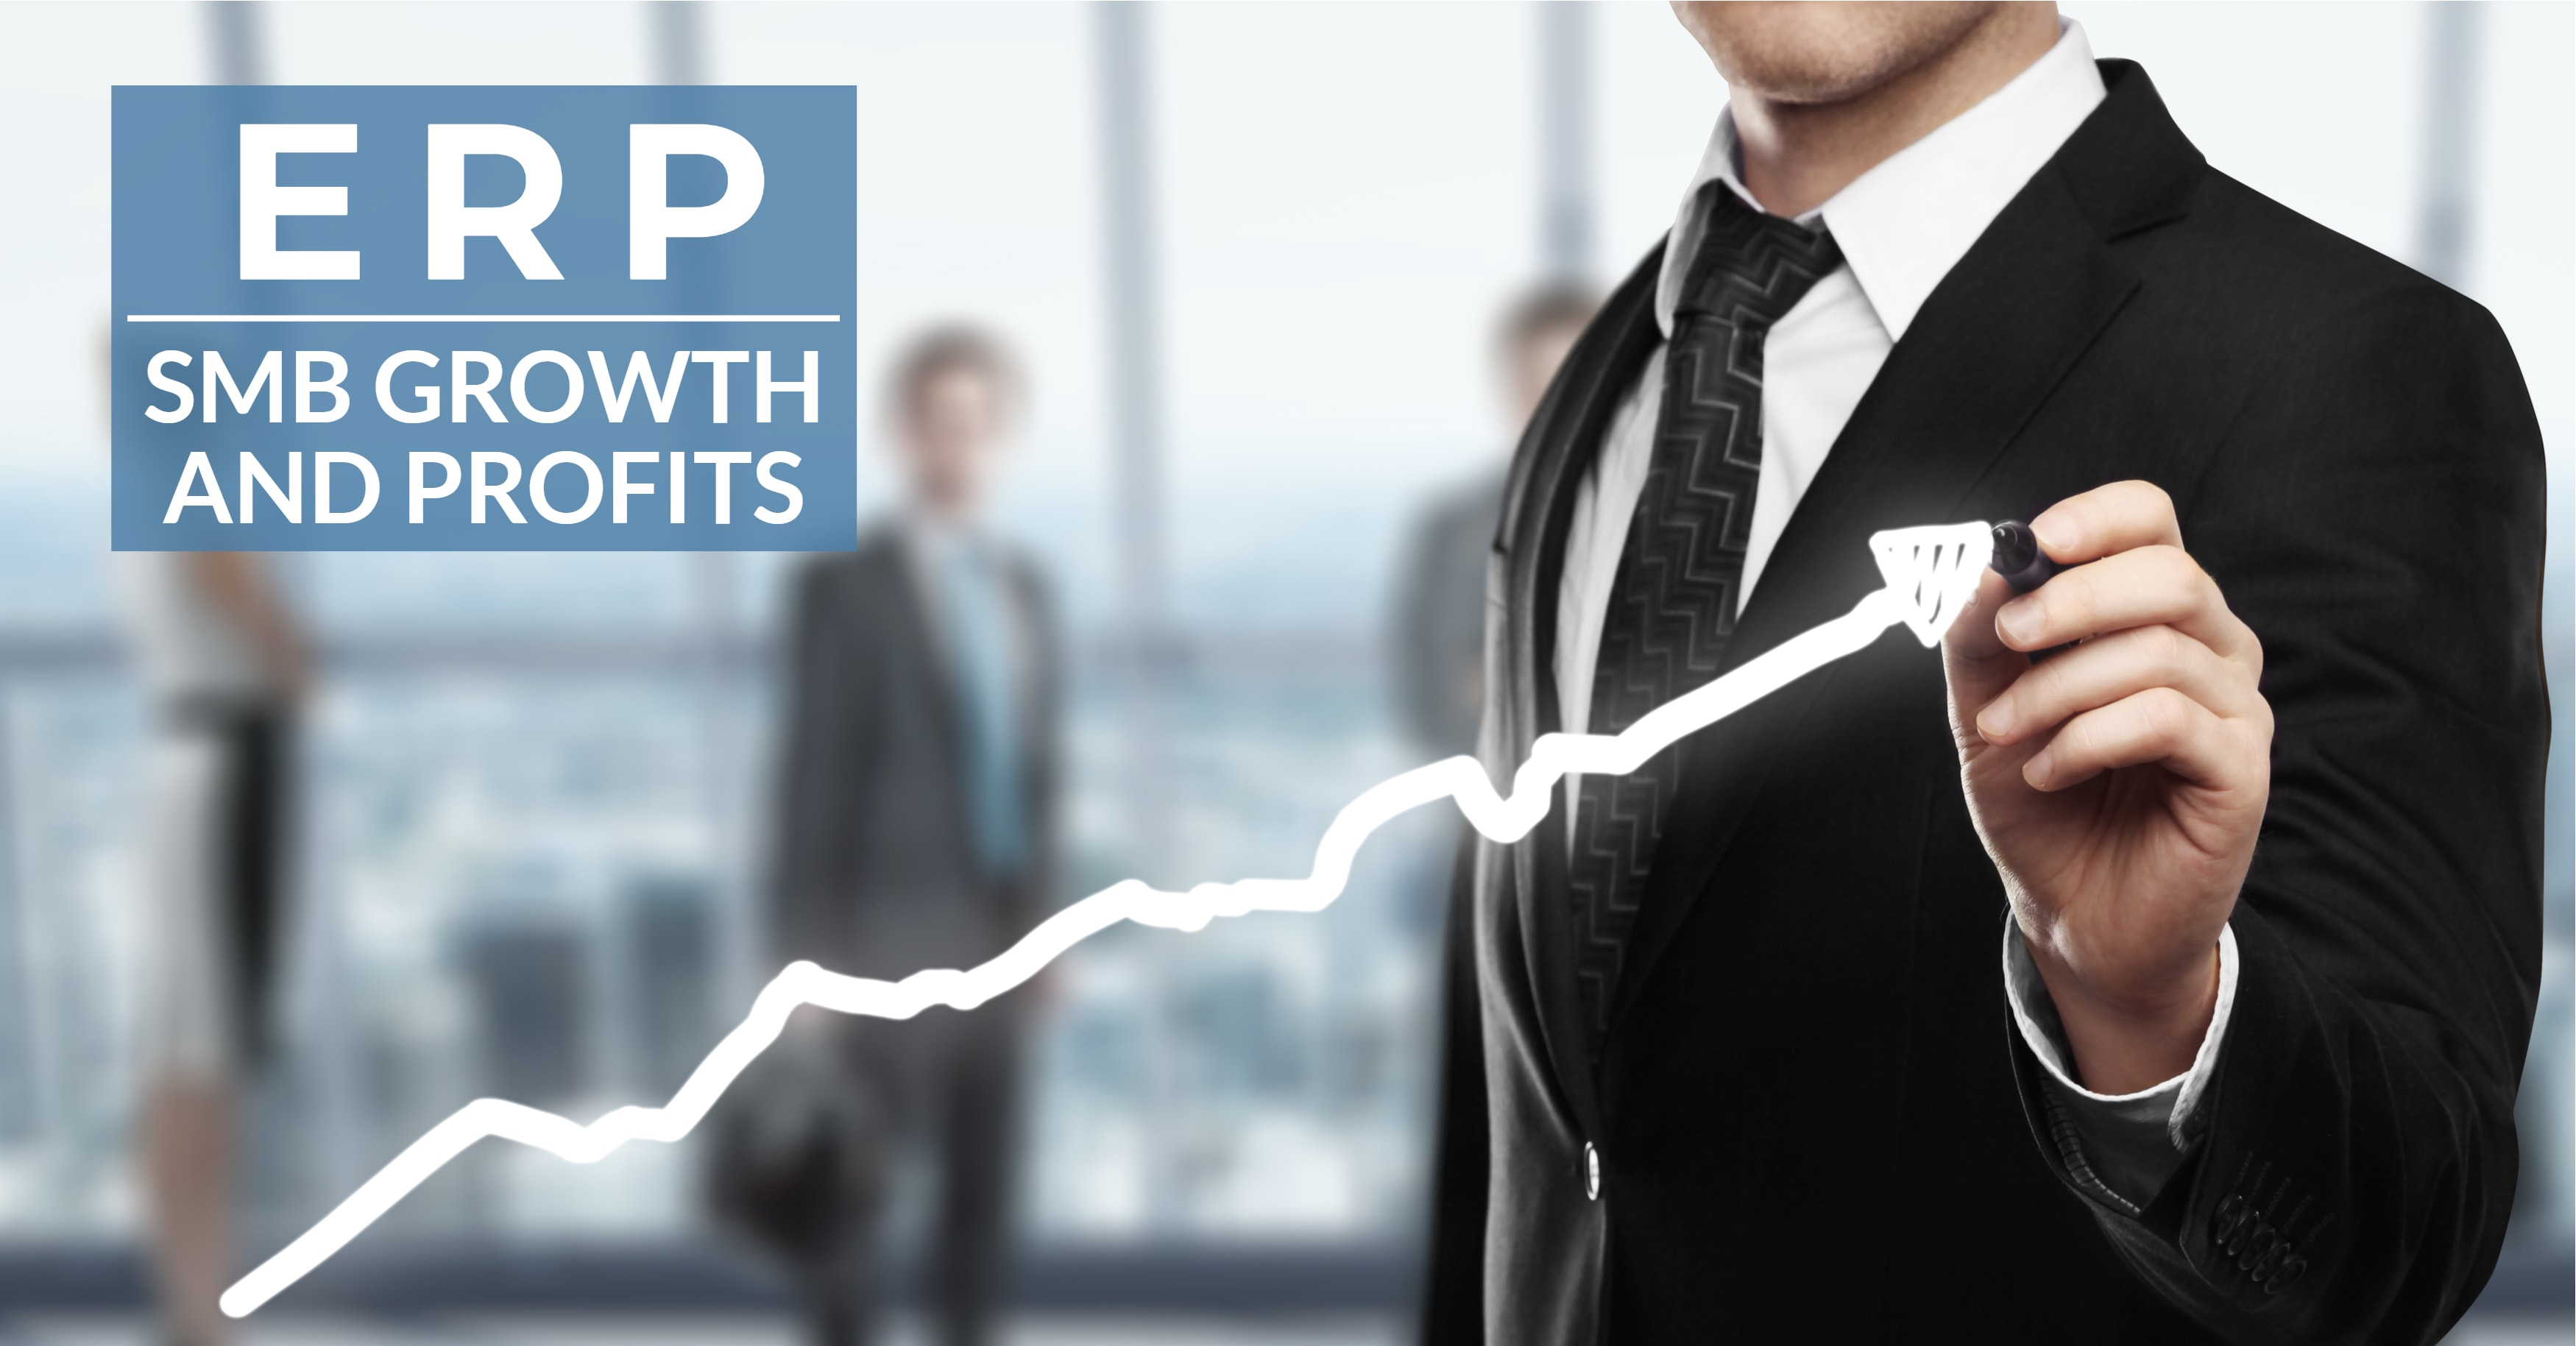 ERP SMB Growth